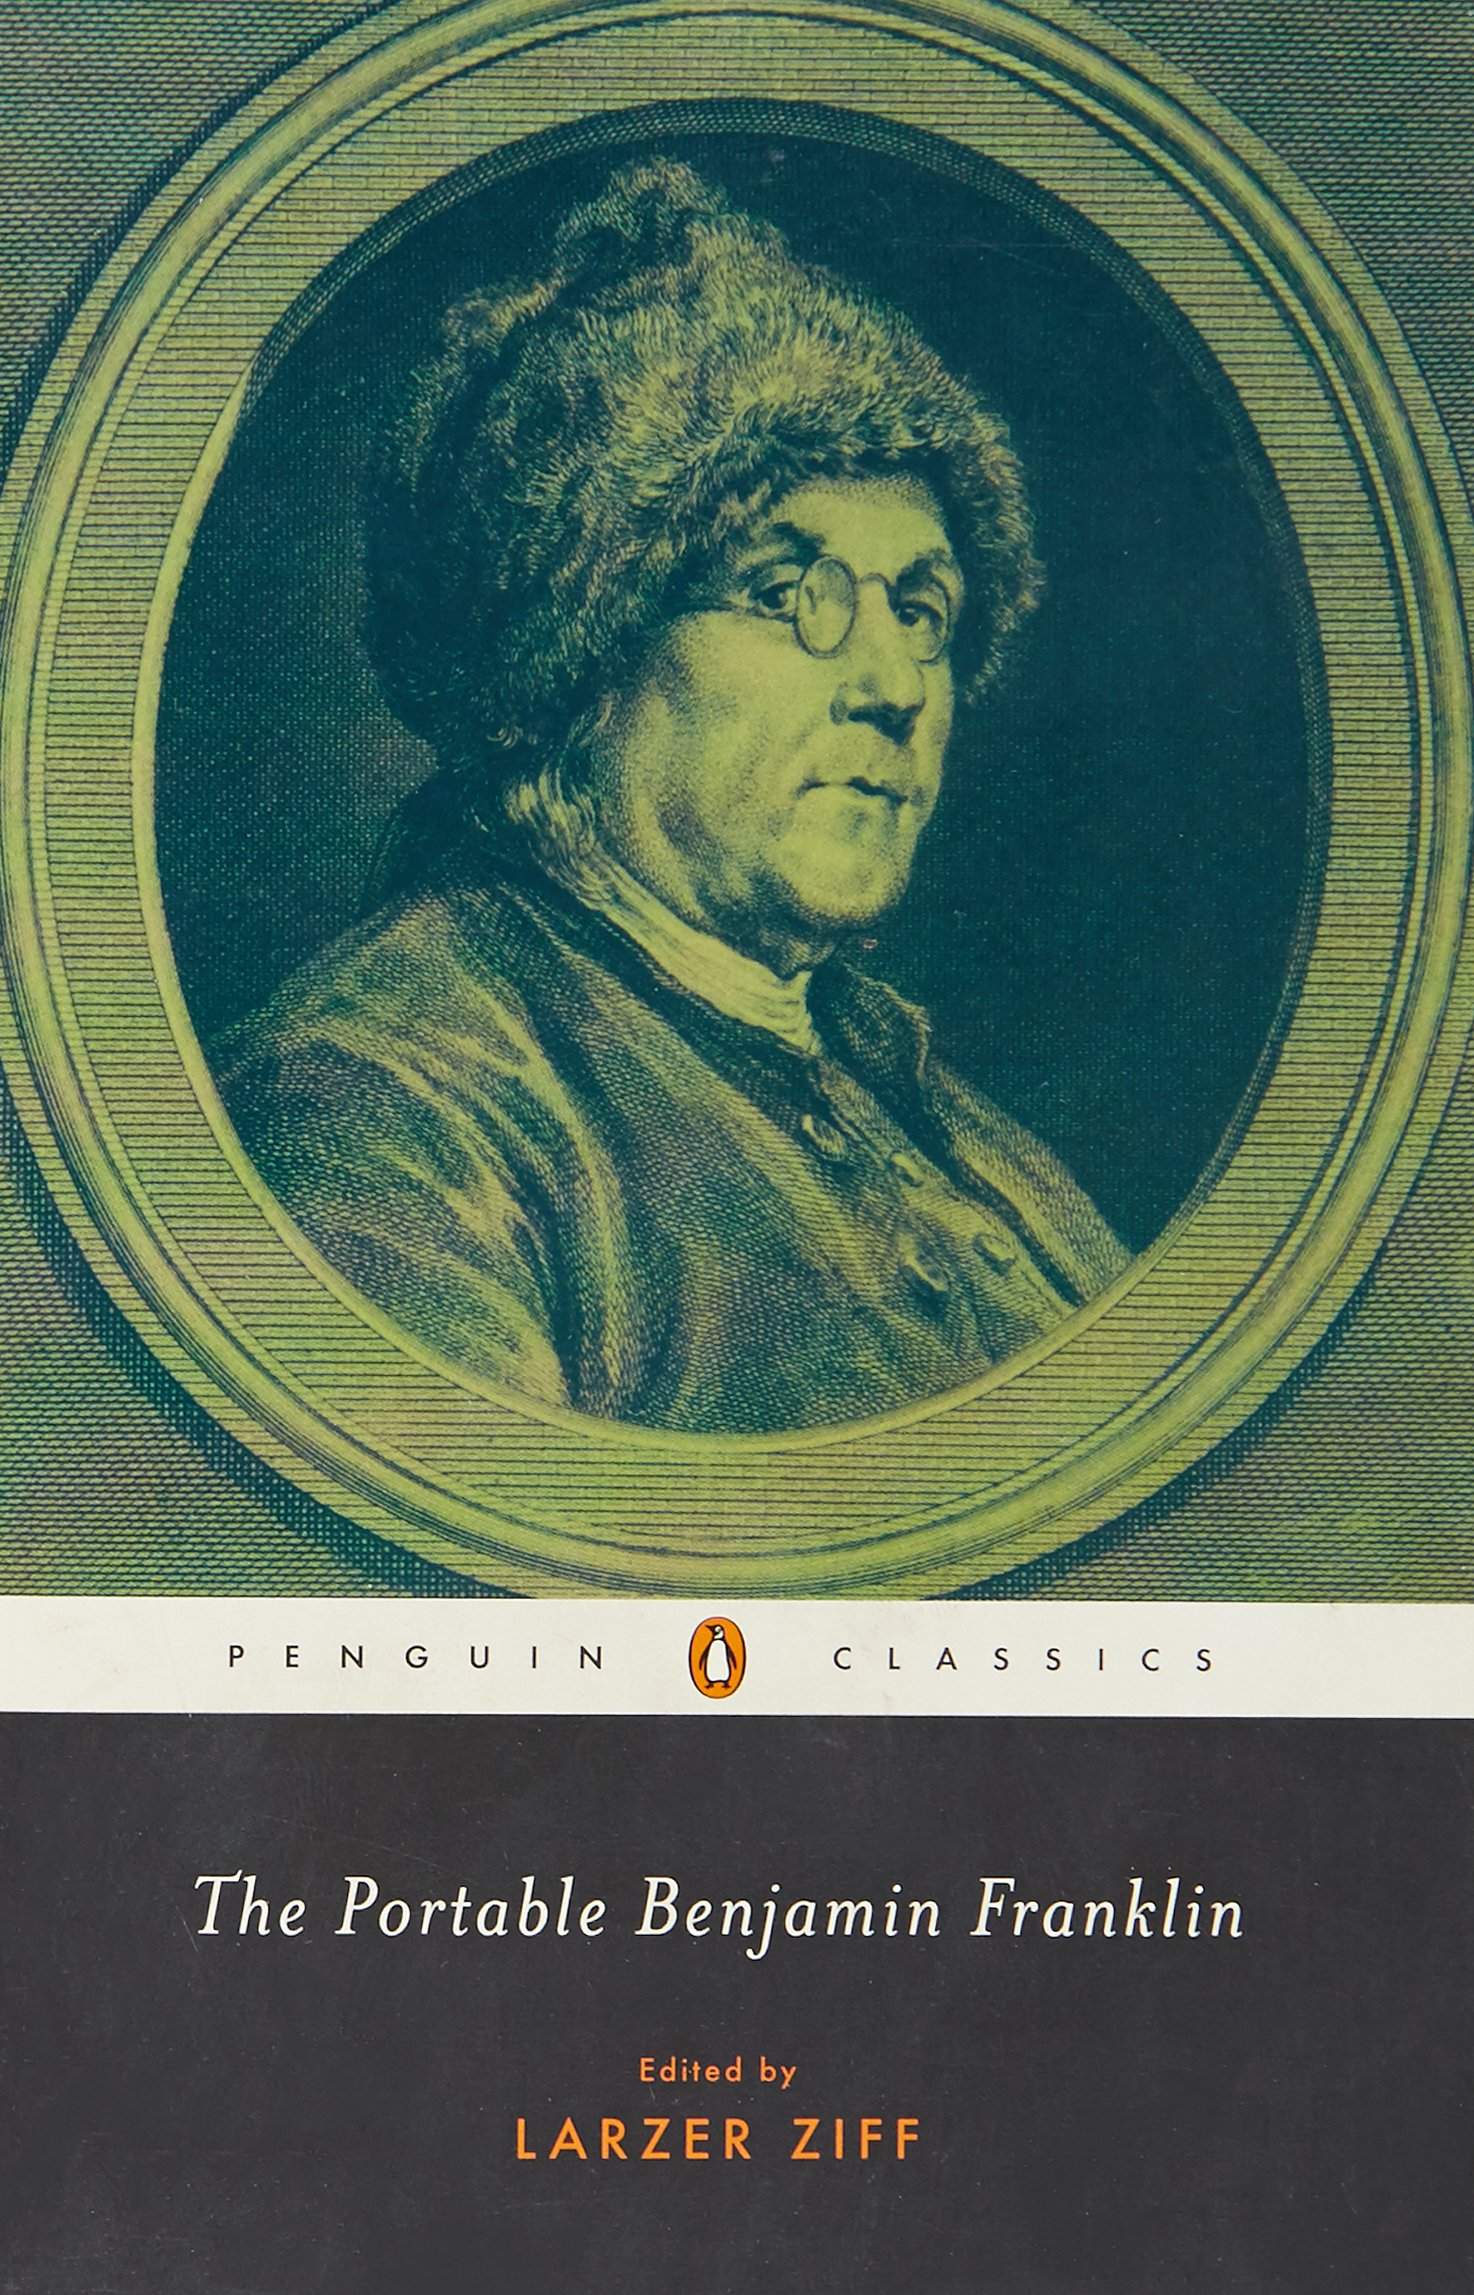 the portable benjamin franklin penguin classics benjamin  the portable benjamin franklin penguin classics benjamin franklin larzer ziff 9780143039549 com books